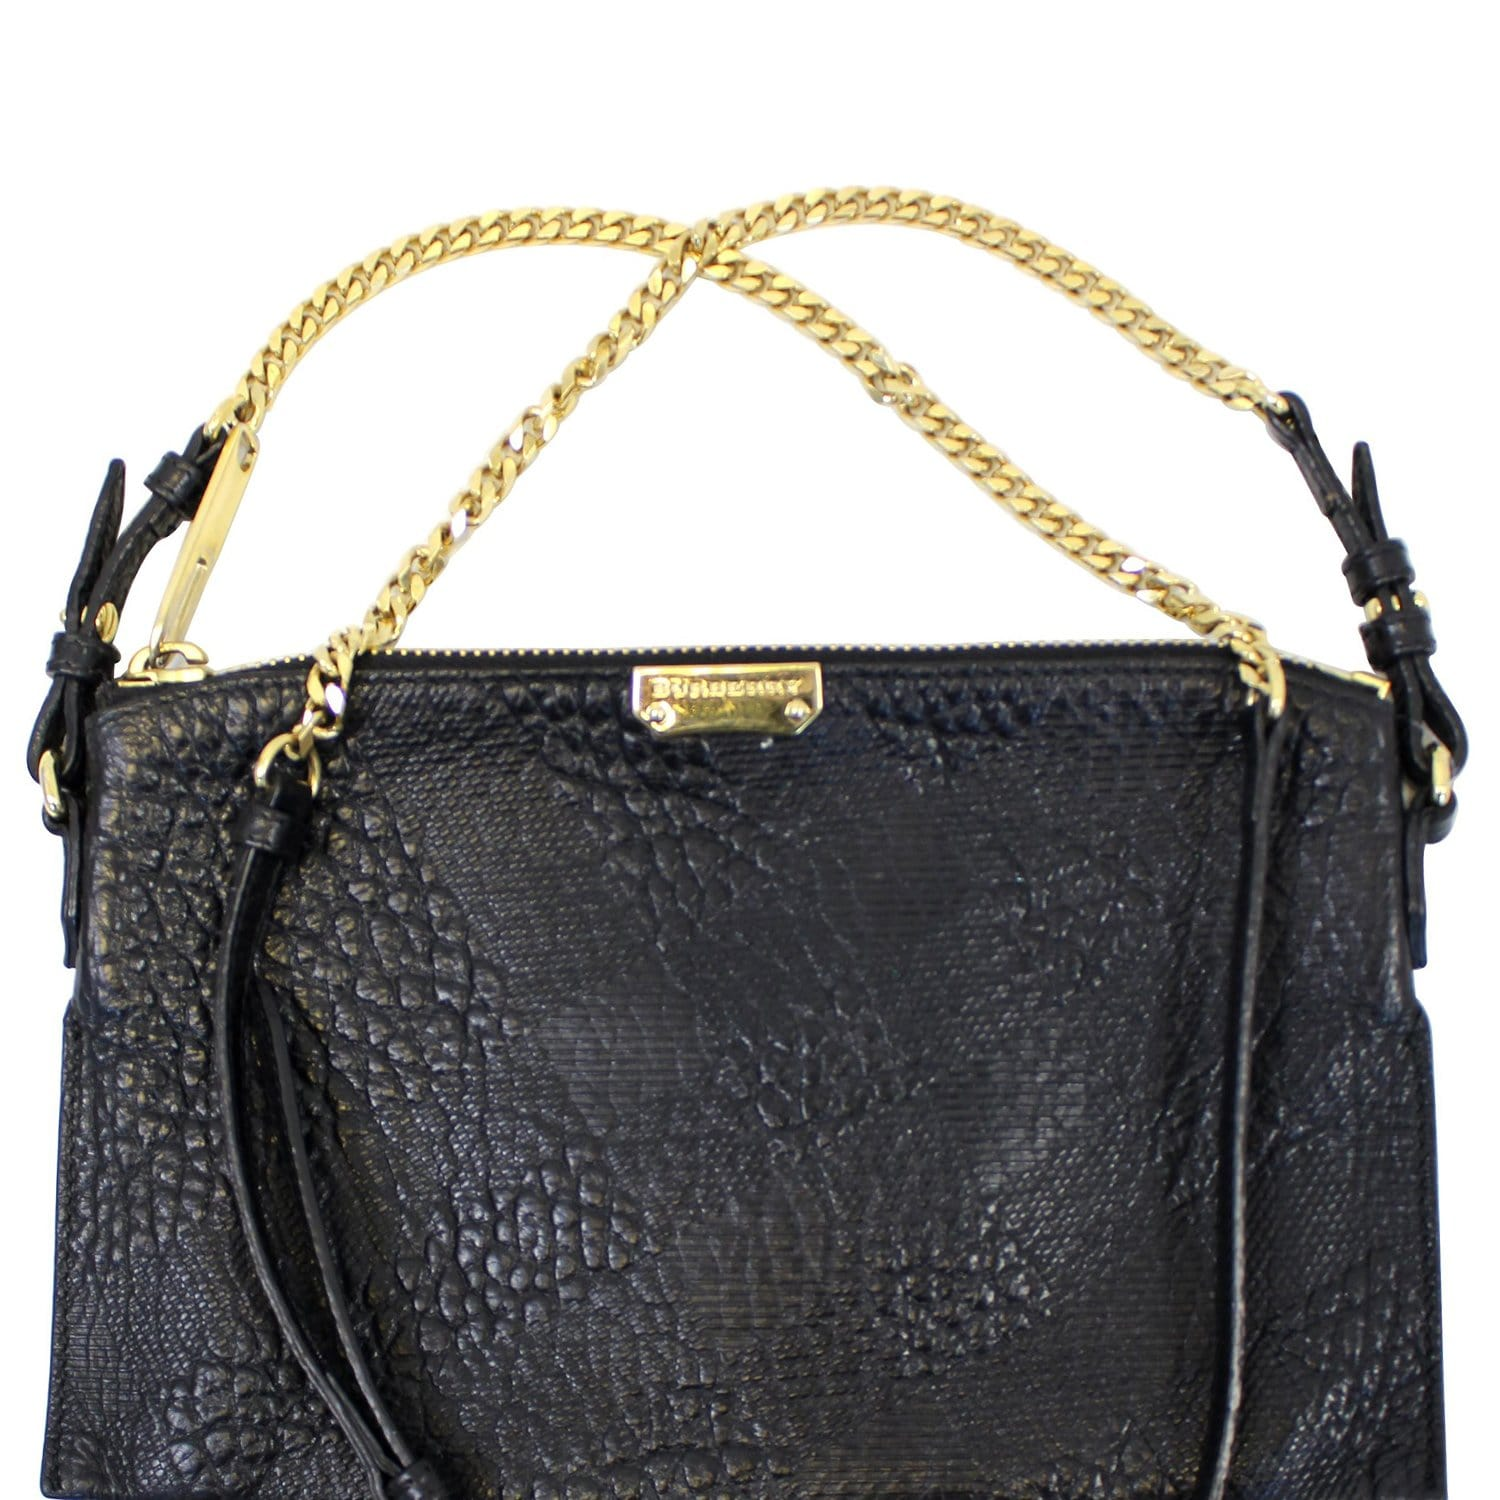 bfd046510d00 BURBERRY Black Embossed Leather Chichester Crossbody Clutch Bag